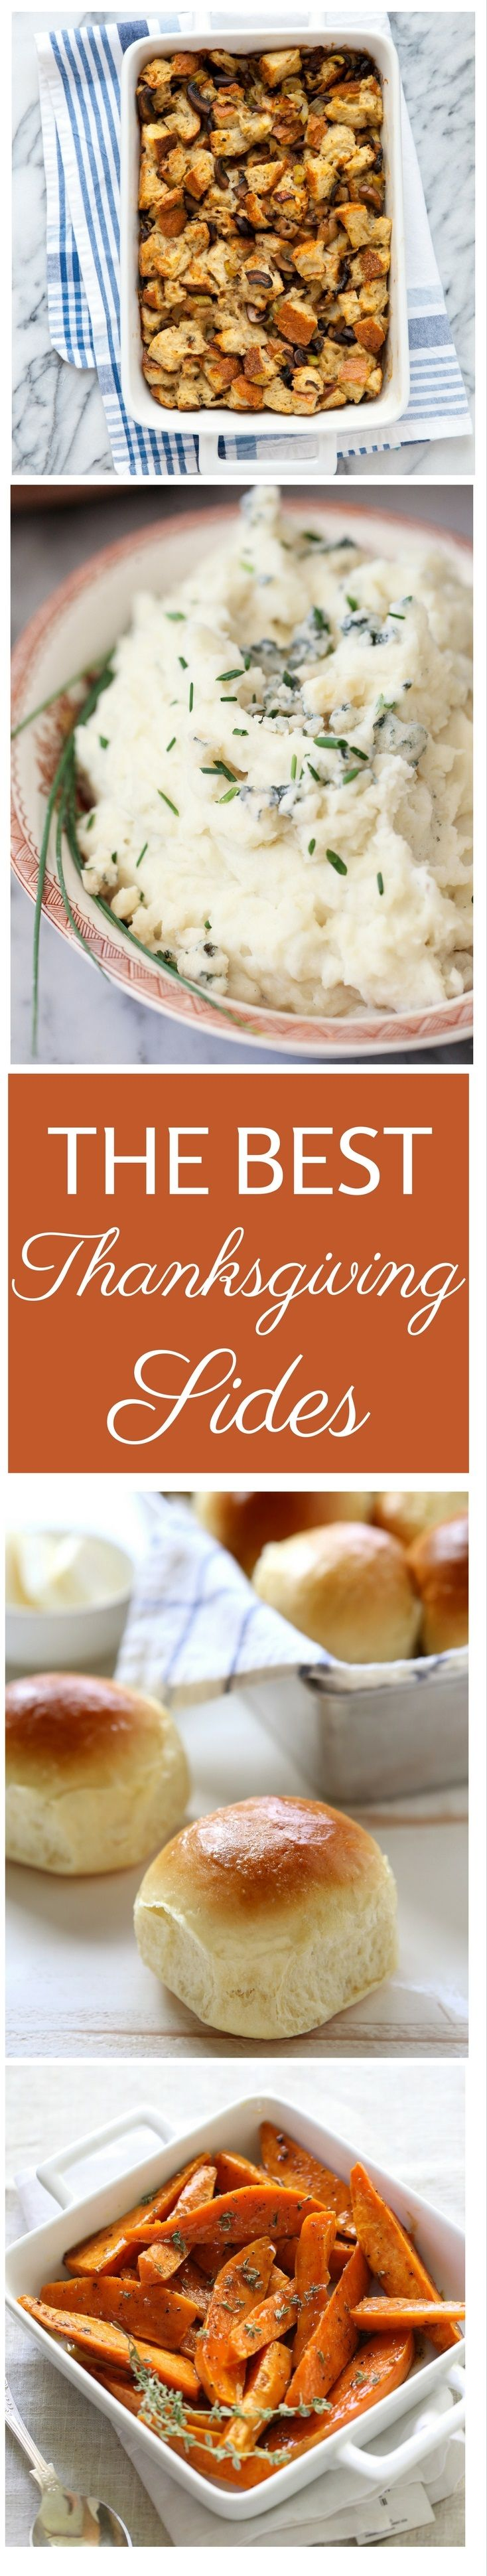 Best Thanksgiving Sides